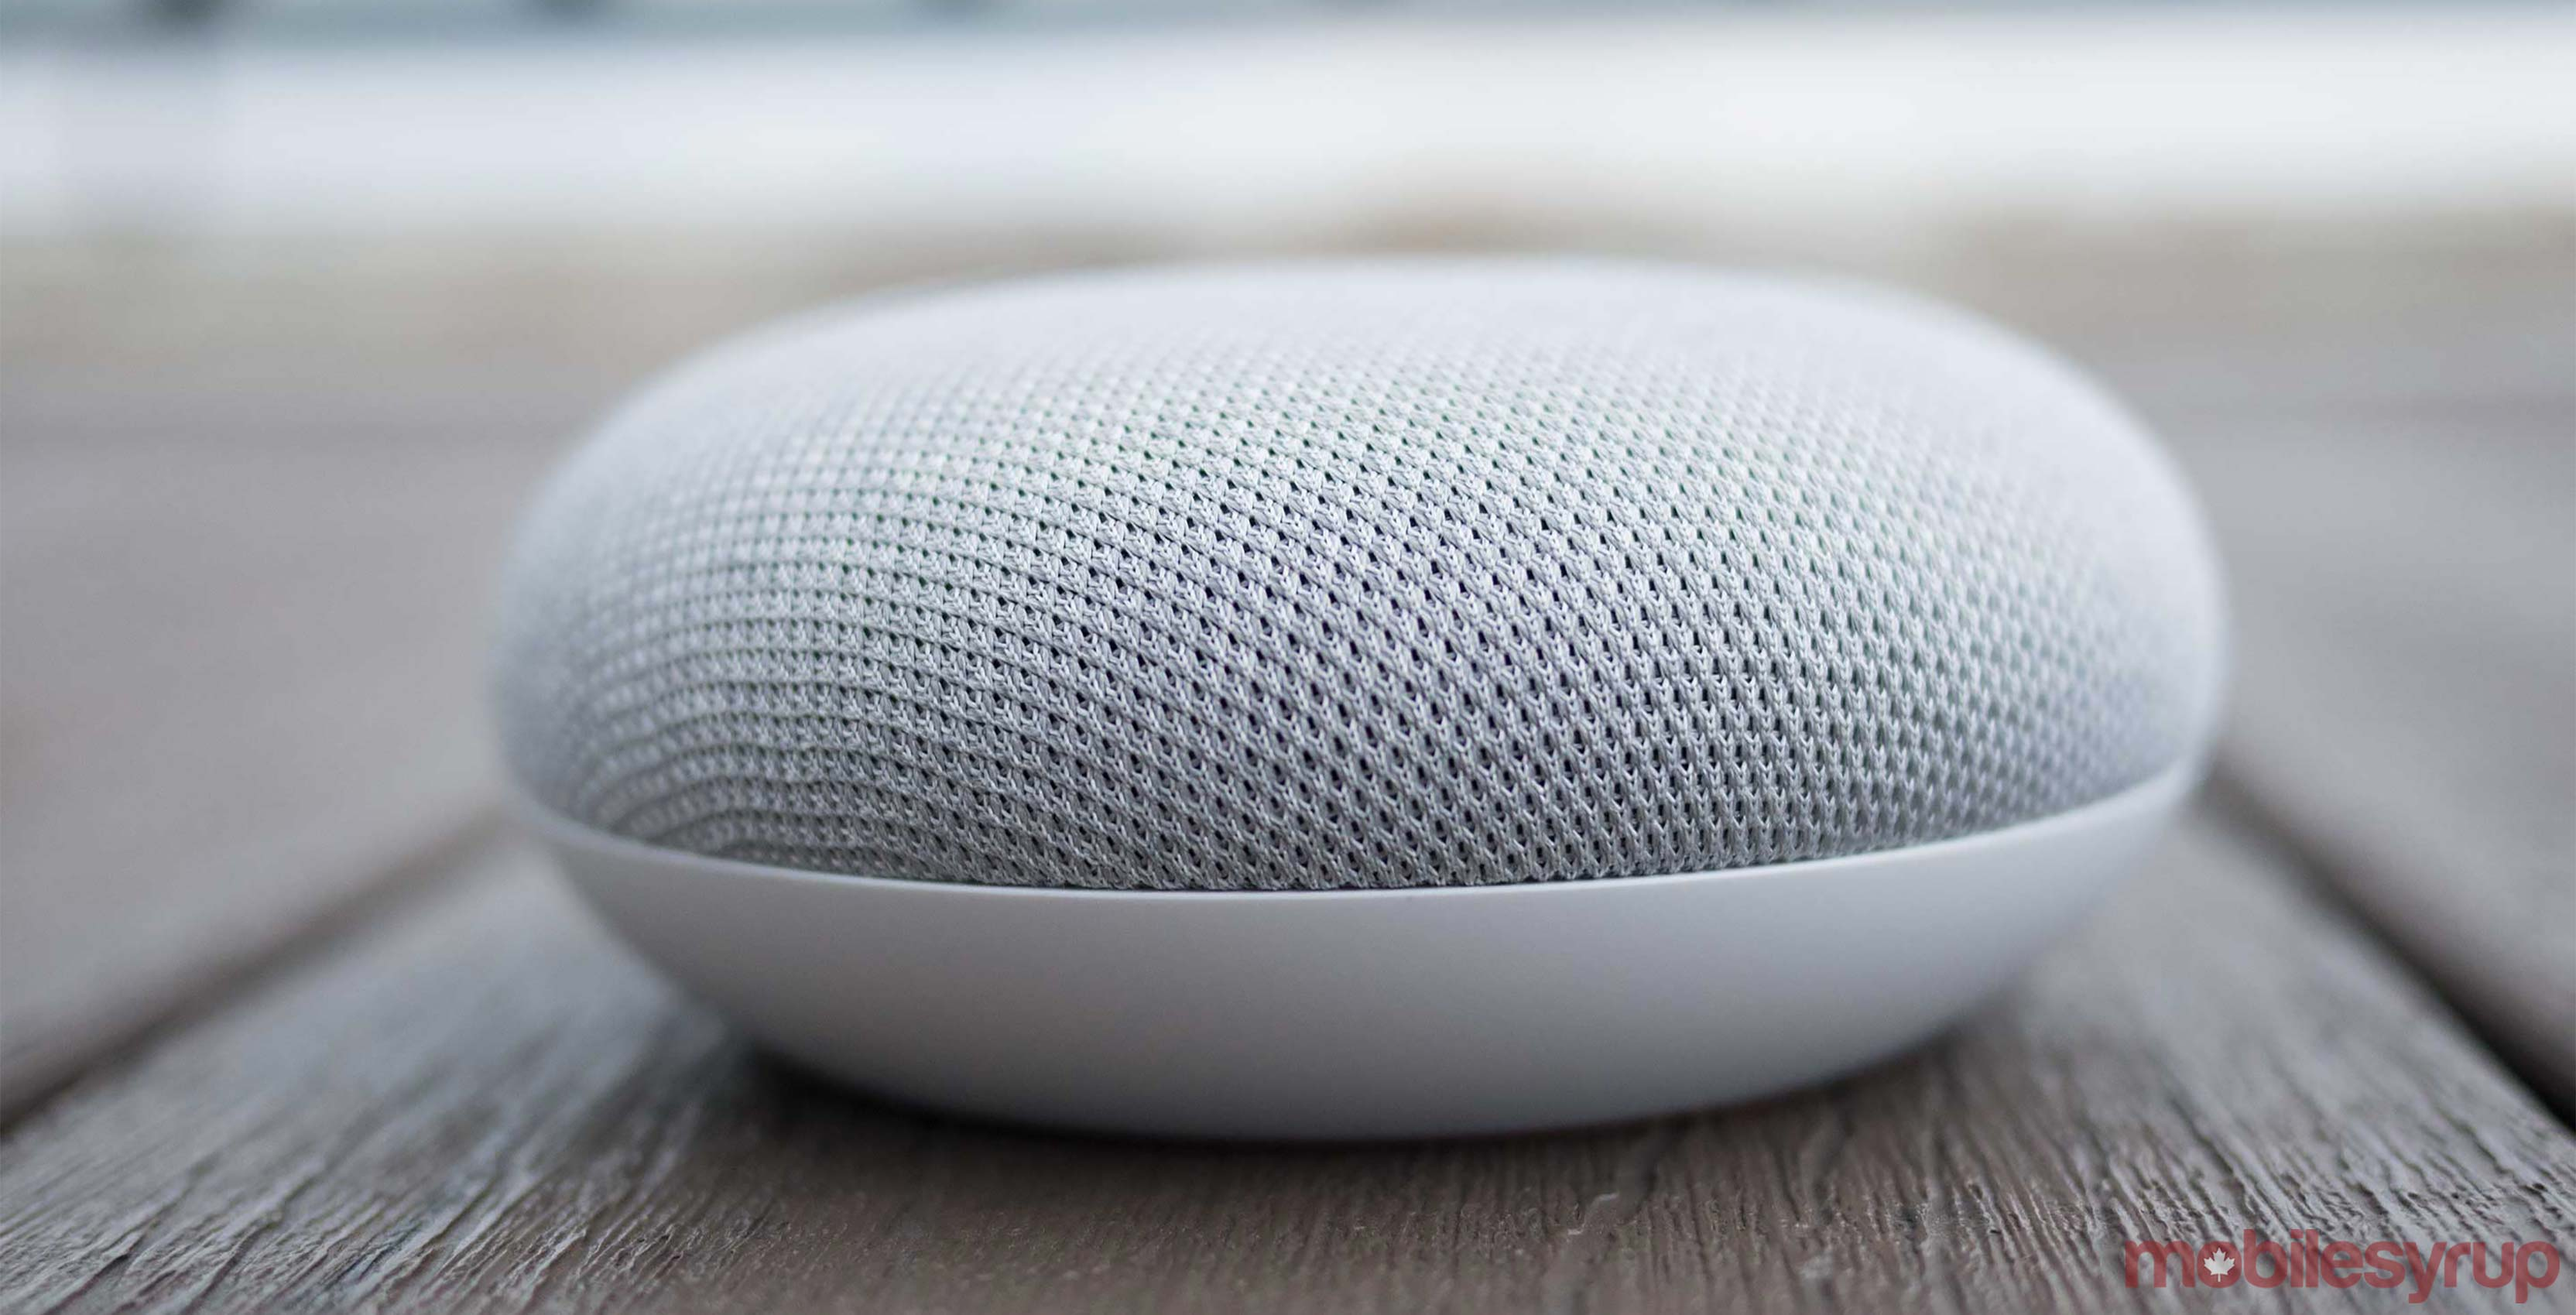 Spotify is giving Premium subscribers in Canada a free Google Home Mini